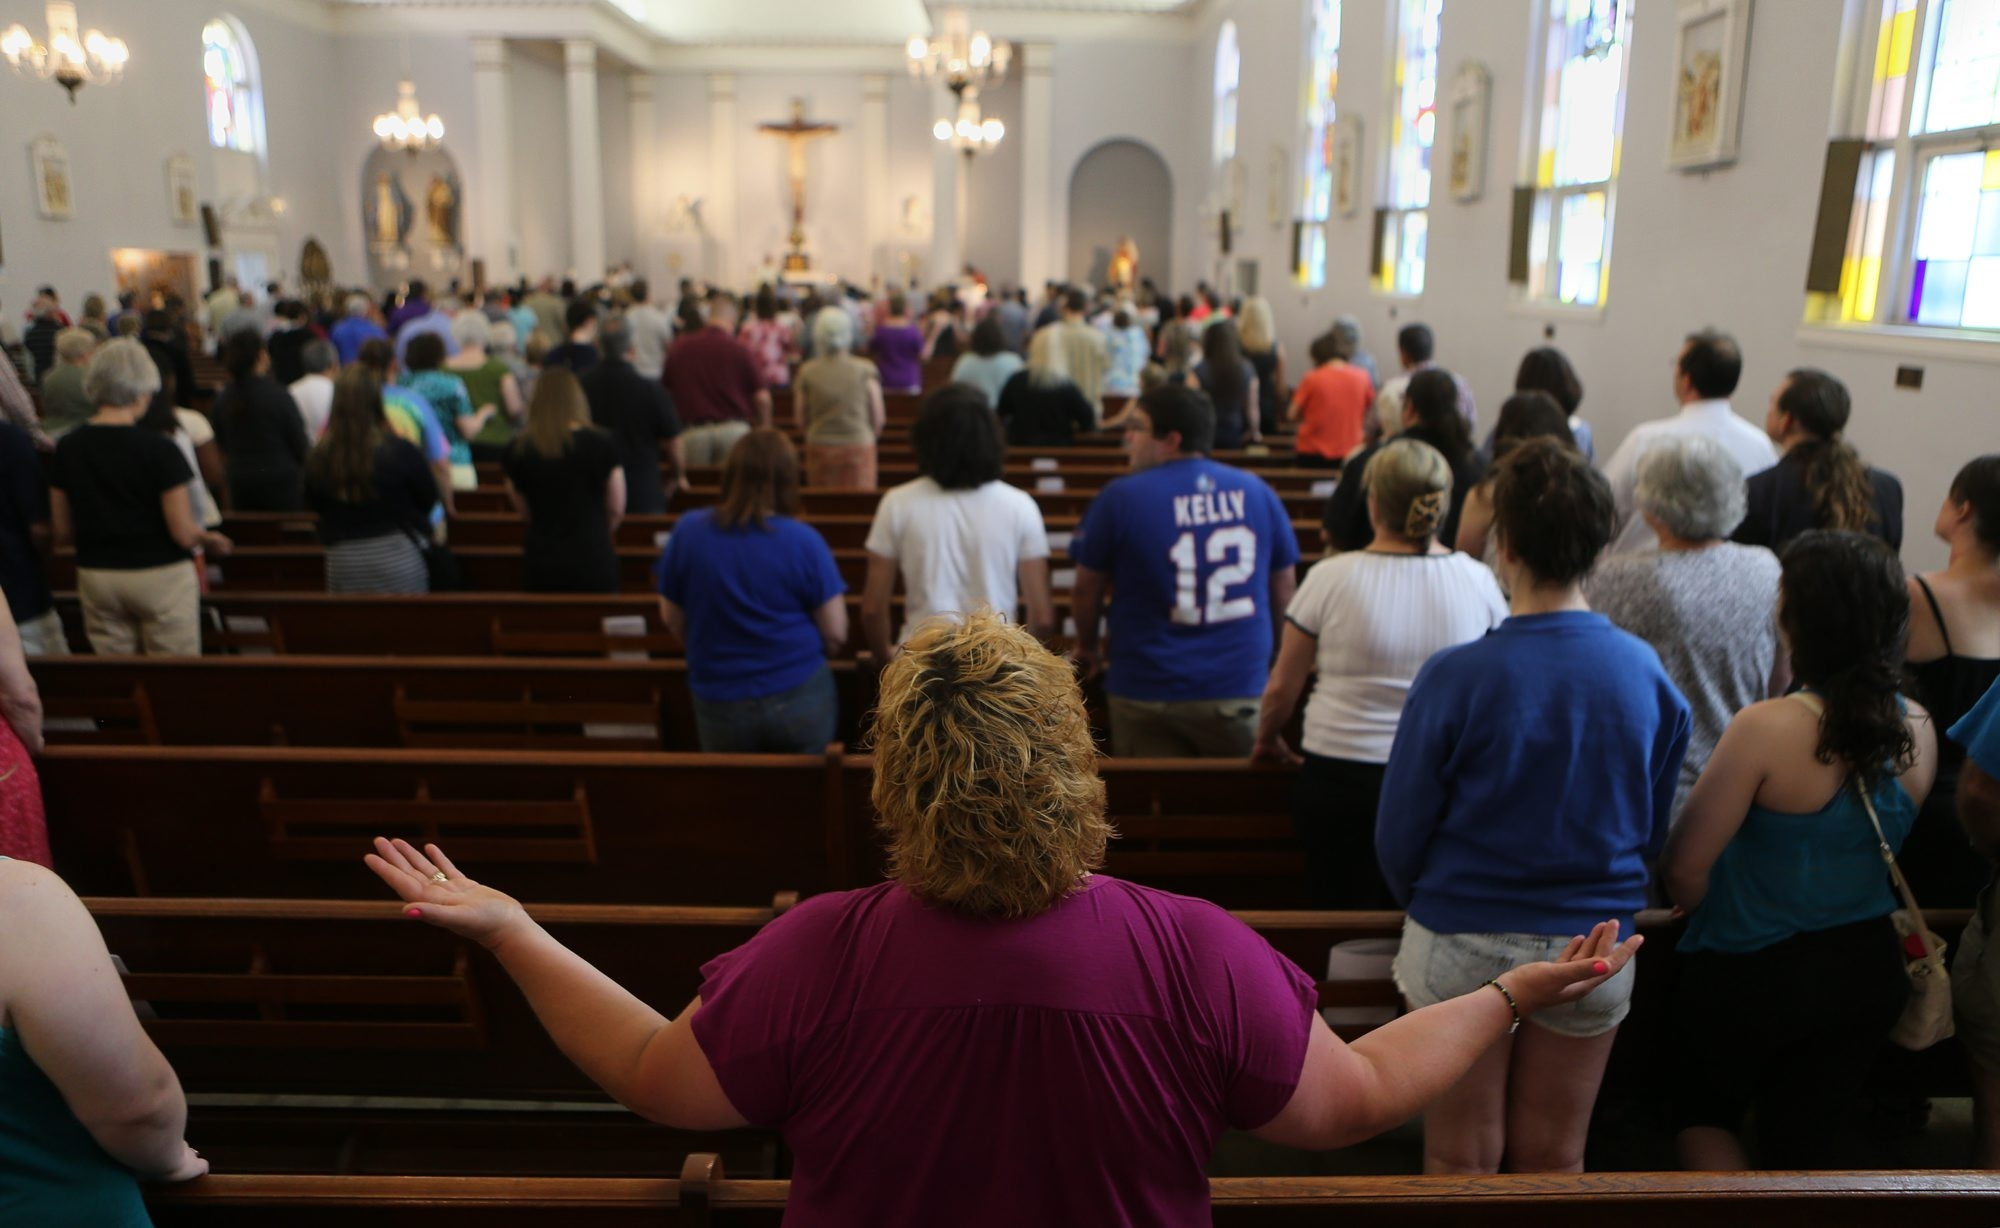 A Mass Mob, the fourth in Buffalo, helped fill the pews Sunday at historic All Saints Catholic Church in Riverside.